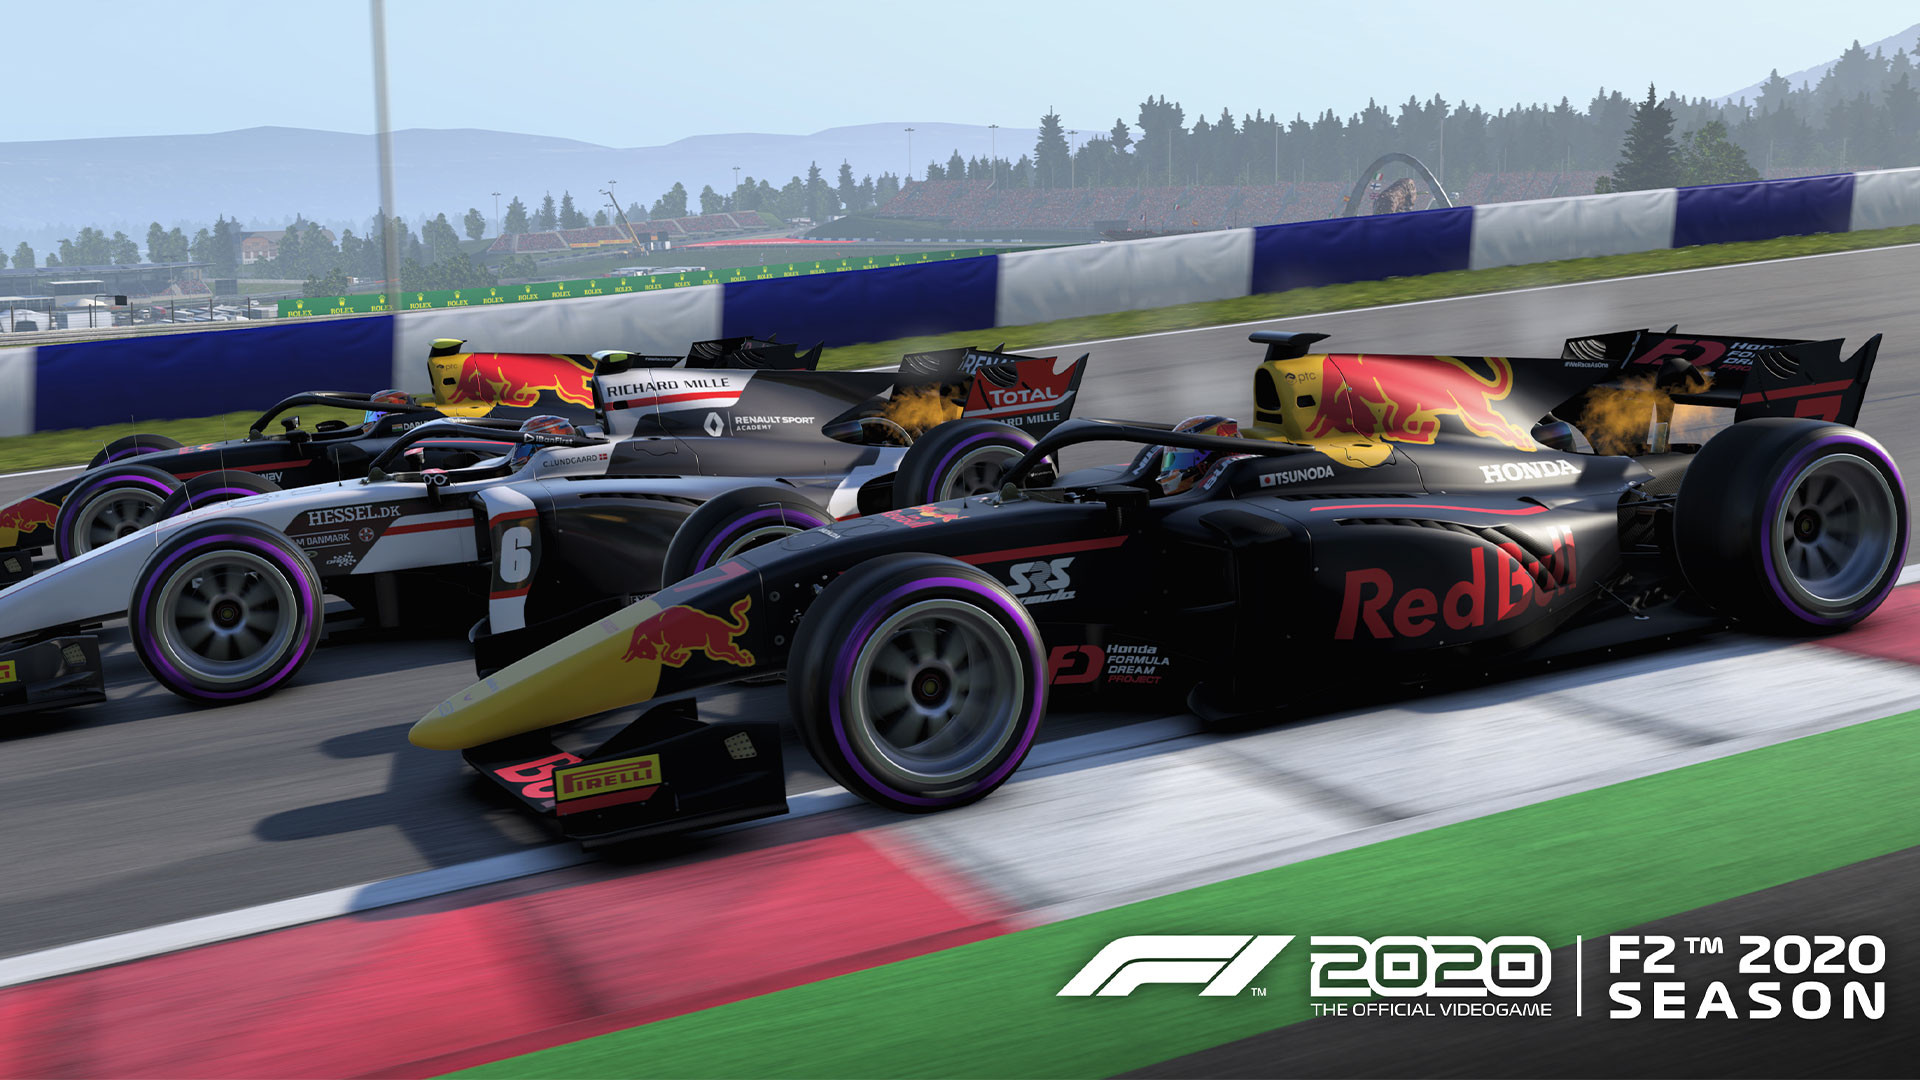 Red Bull f2 car at the Red Bull Ring in Austria